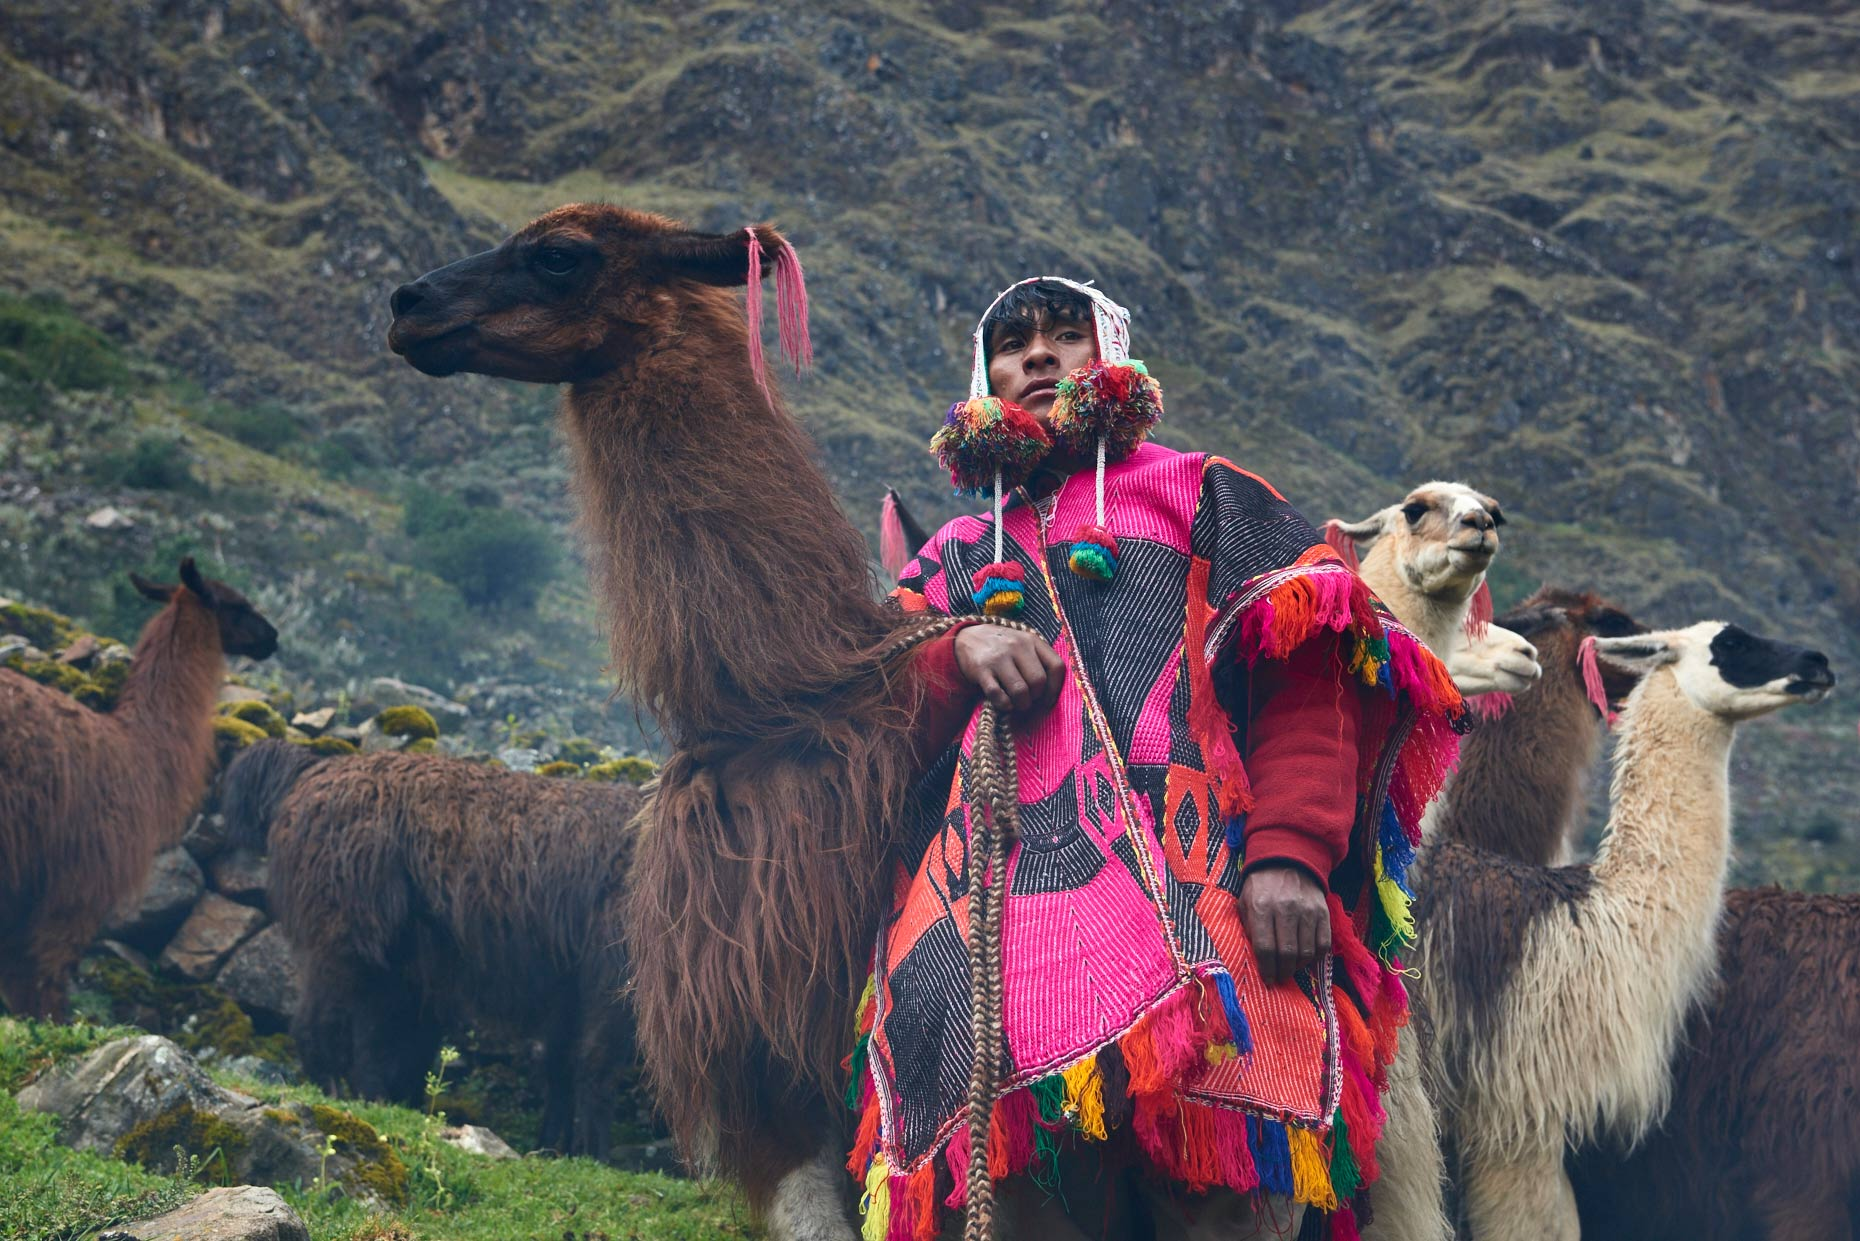 Peruvian-mountain-man-posing-with-his-Alpaca-herd